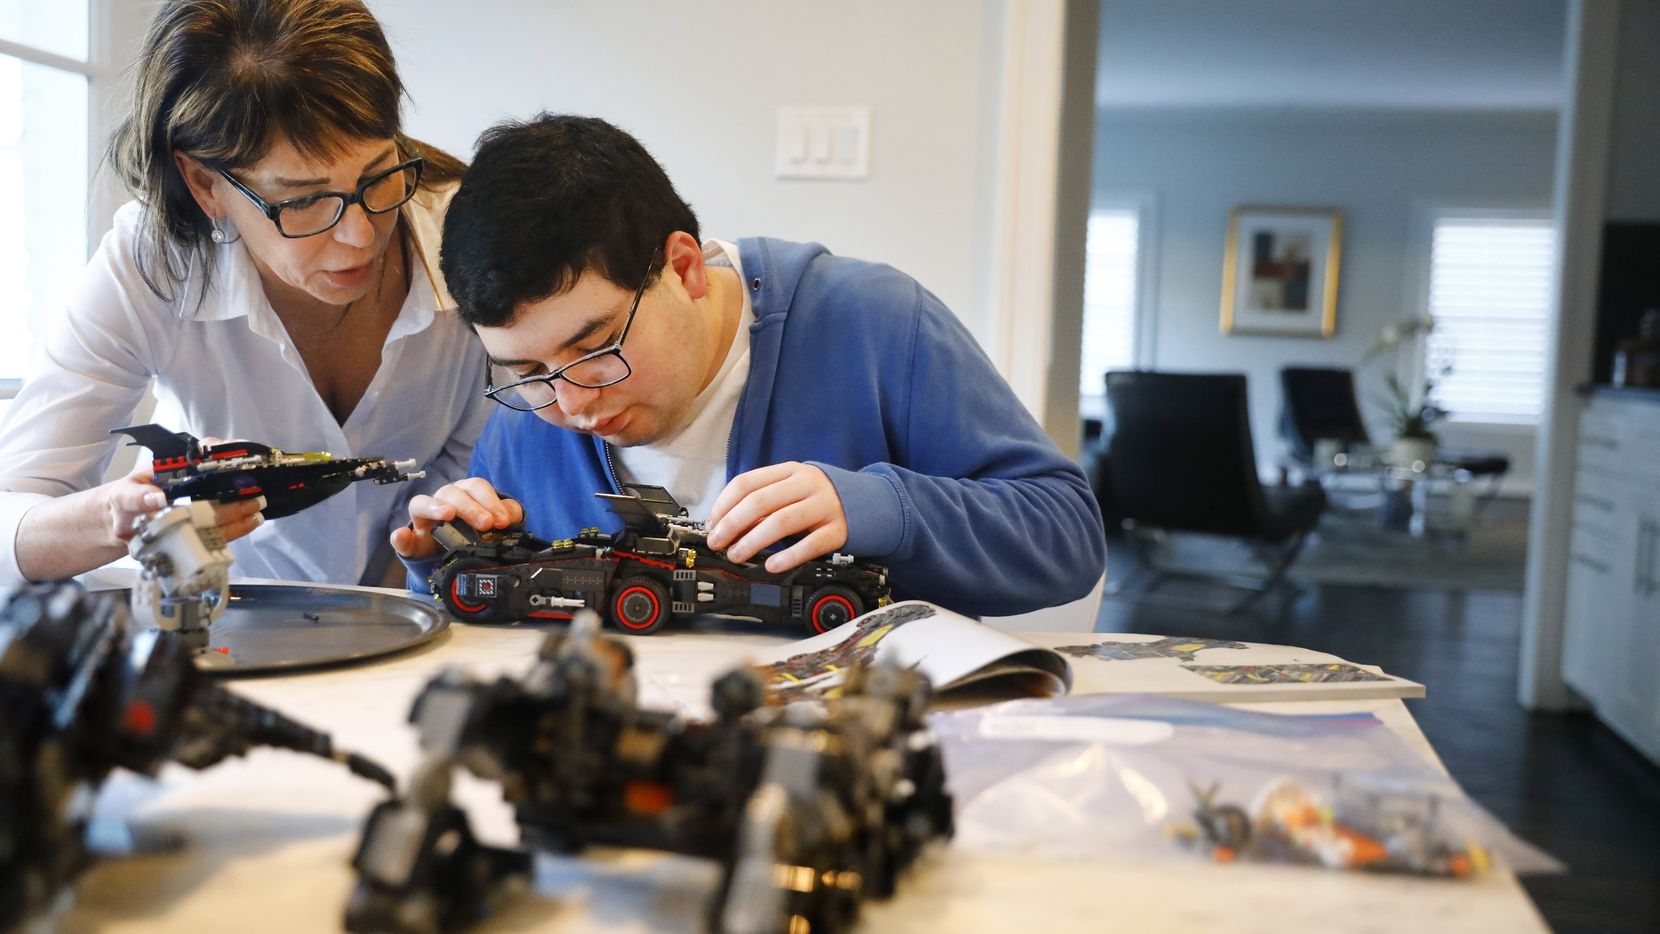 Ingrid Basson lent a helping hand to her son Sam with a Lego project in February 2018, when they said he planned to live at a 29 Acres development in Denton County. 29 Acres provides housing and employment opportunities to adults with autism.